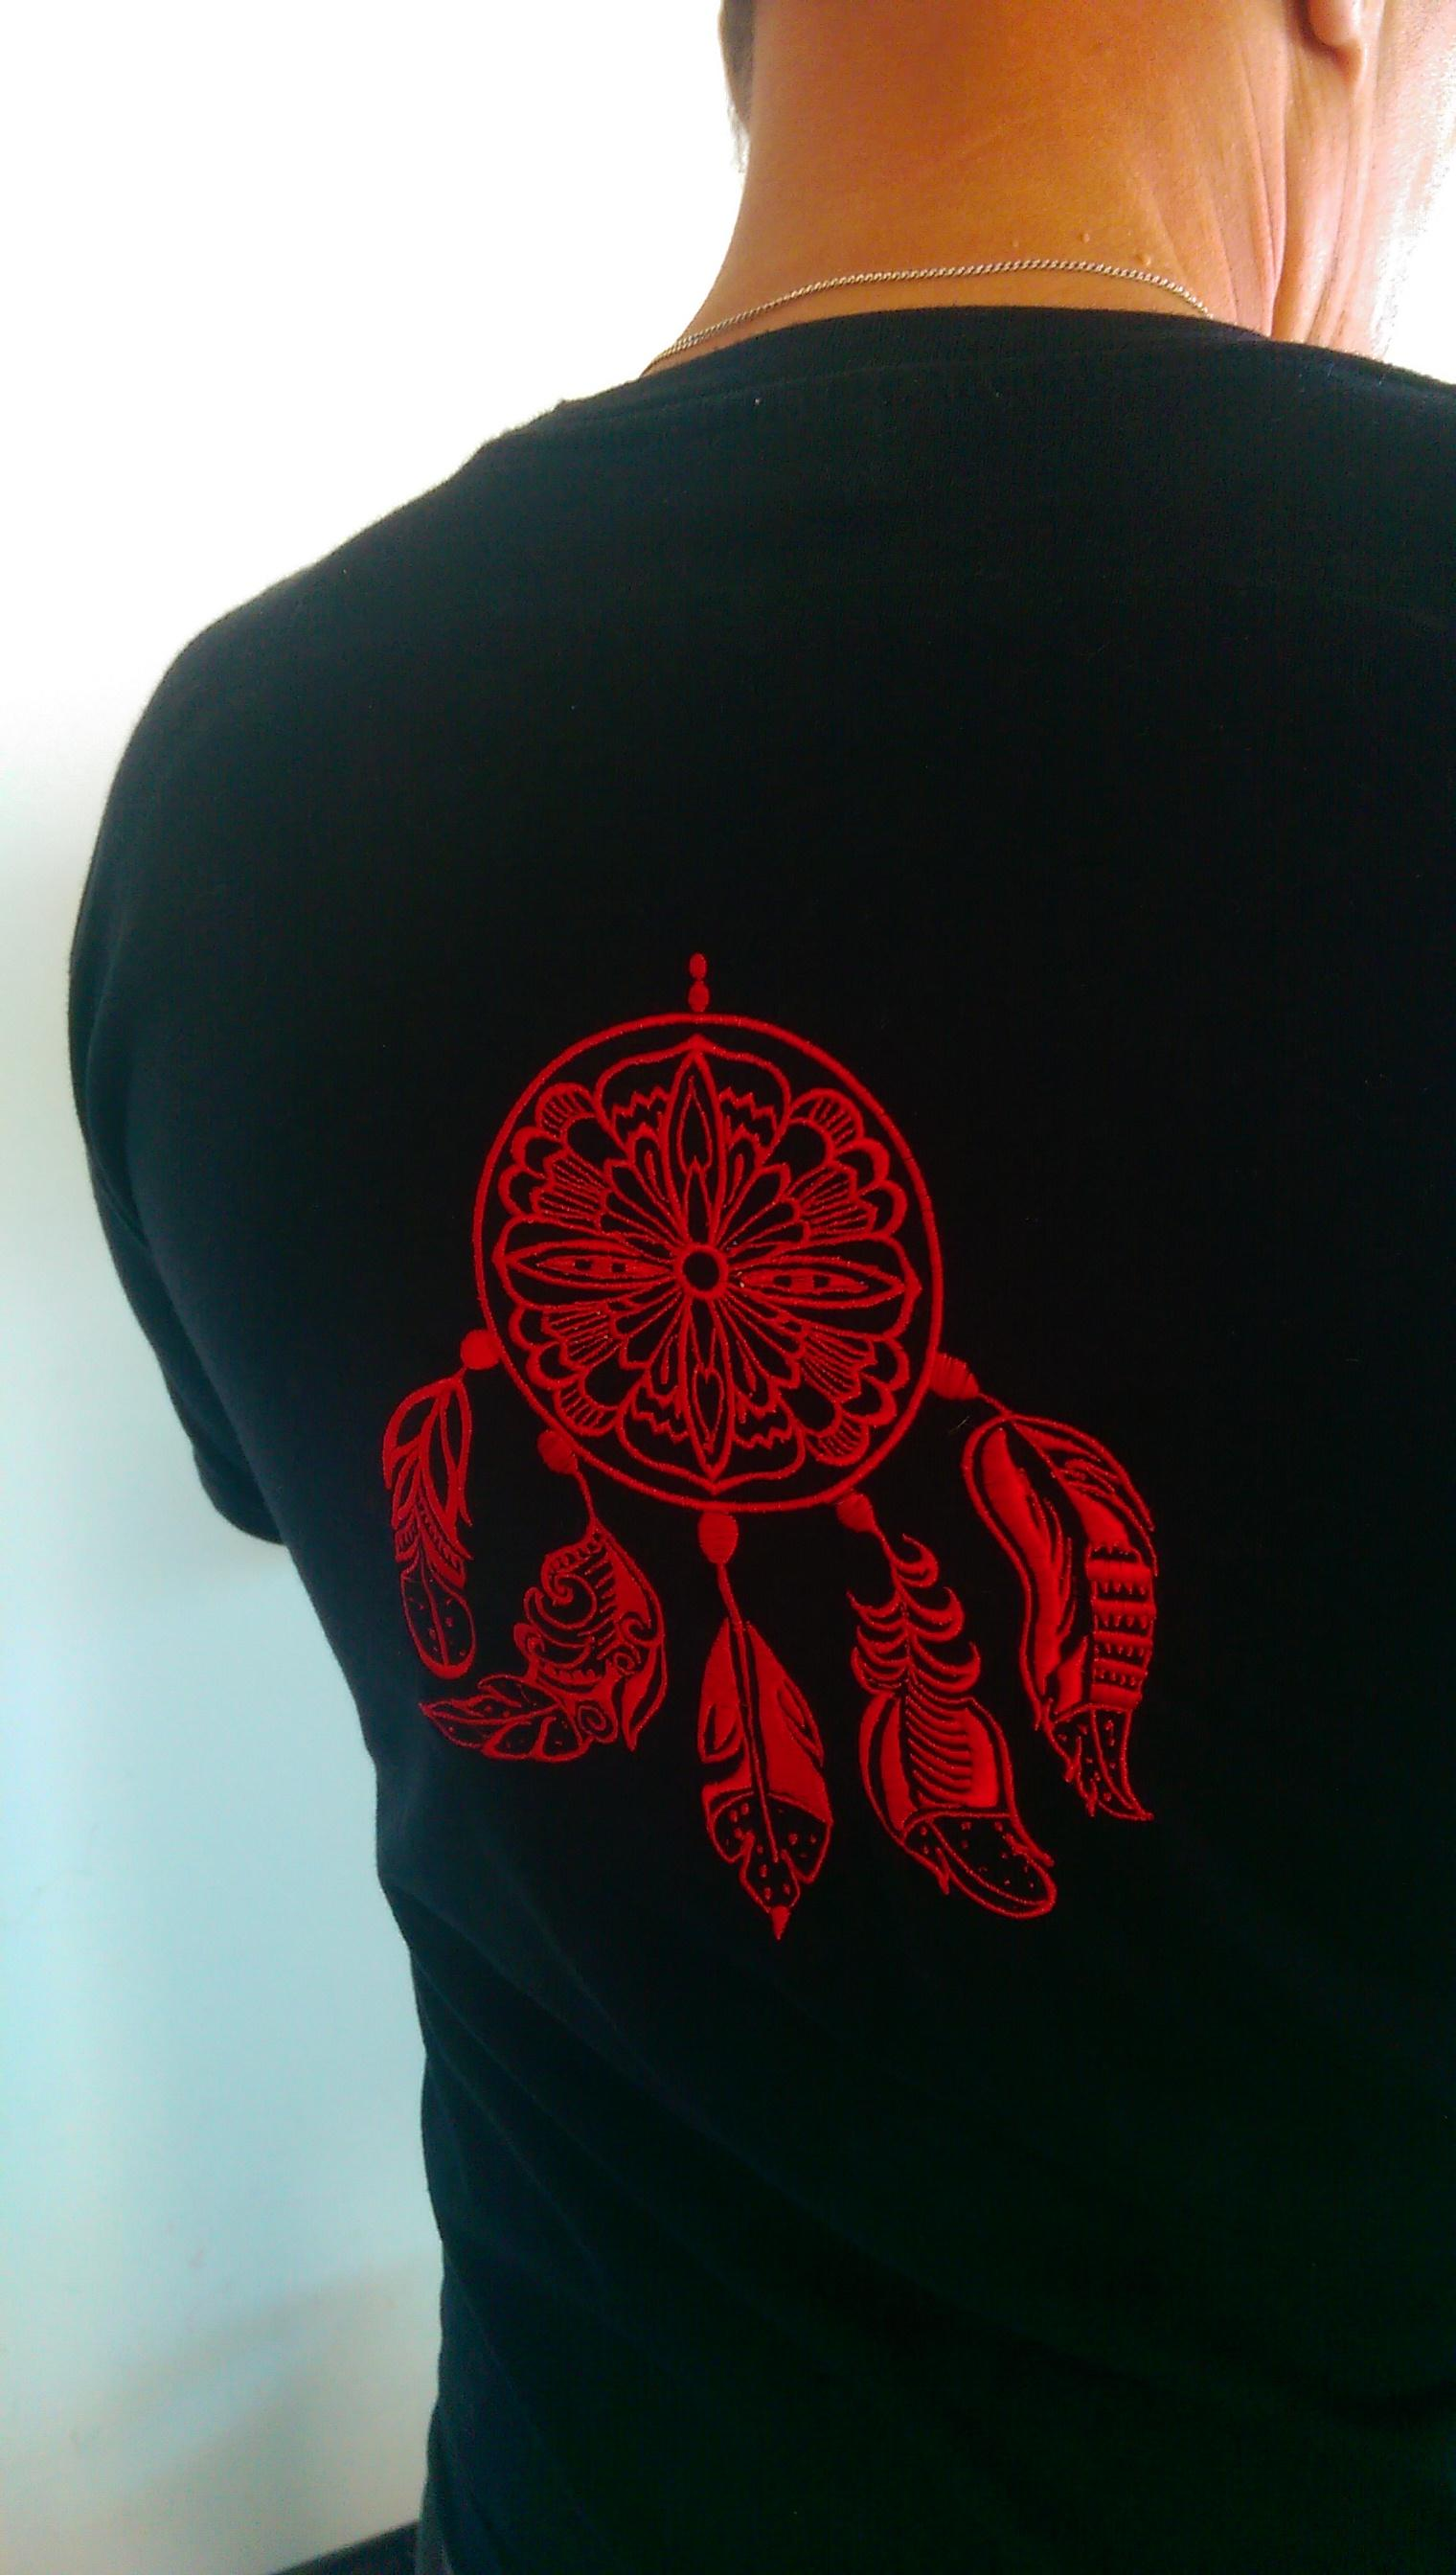 Man's t-shirt with Dreamcatcher embroidery design